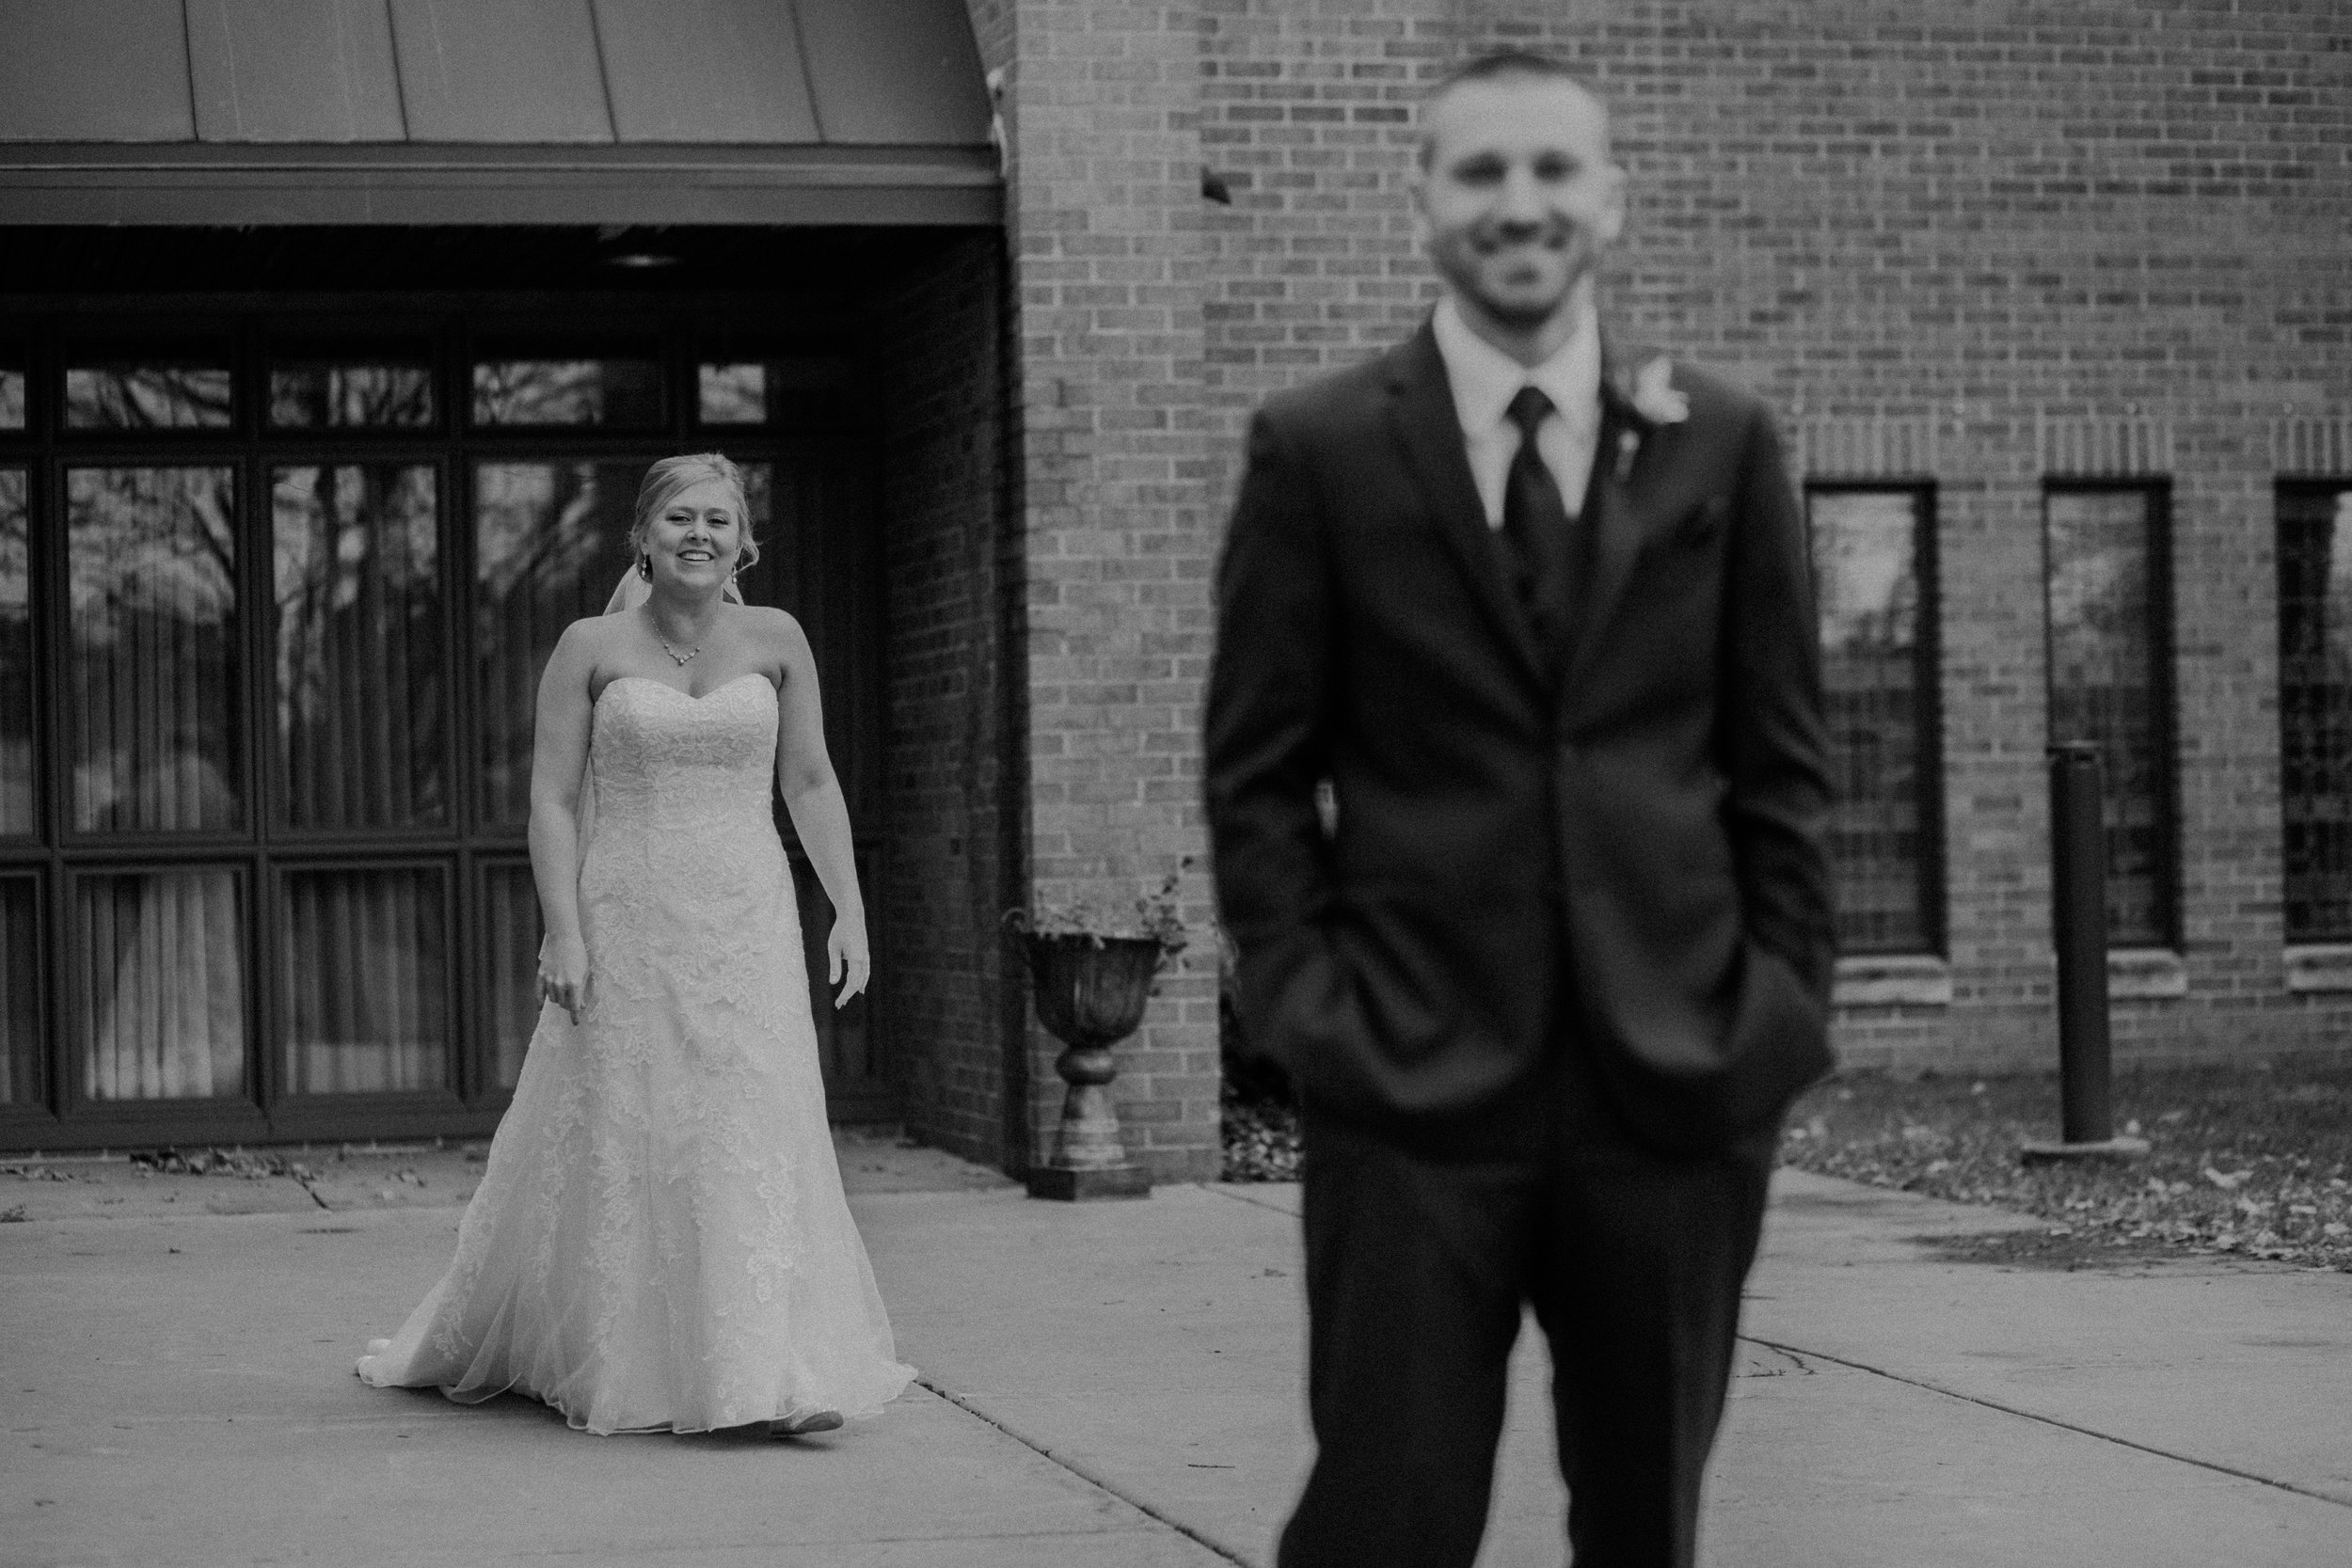 black and white photo of bride and groom's first look on wedding day at St Bridget's Catholic Church in River Falls